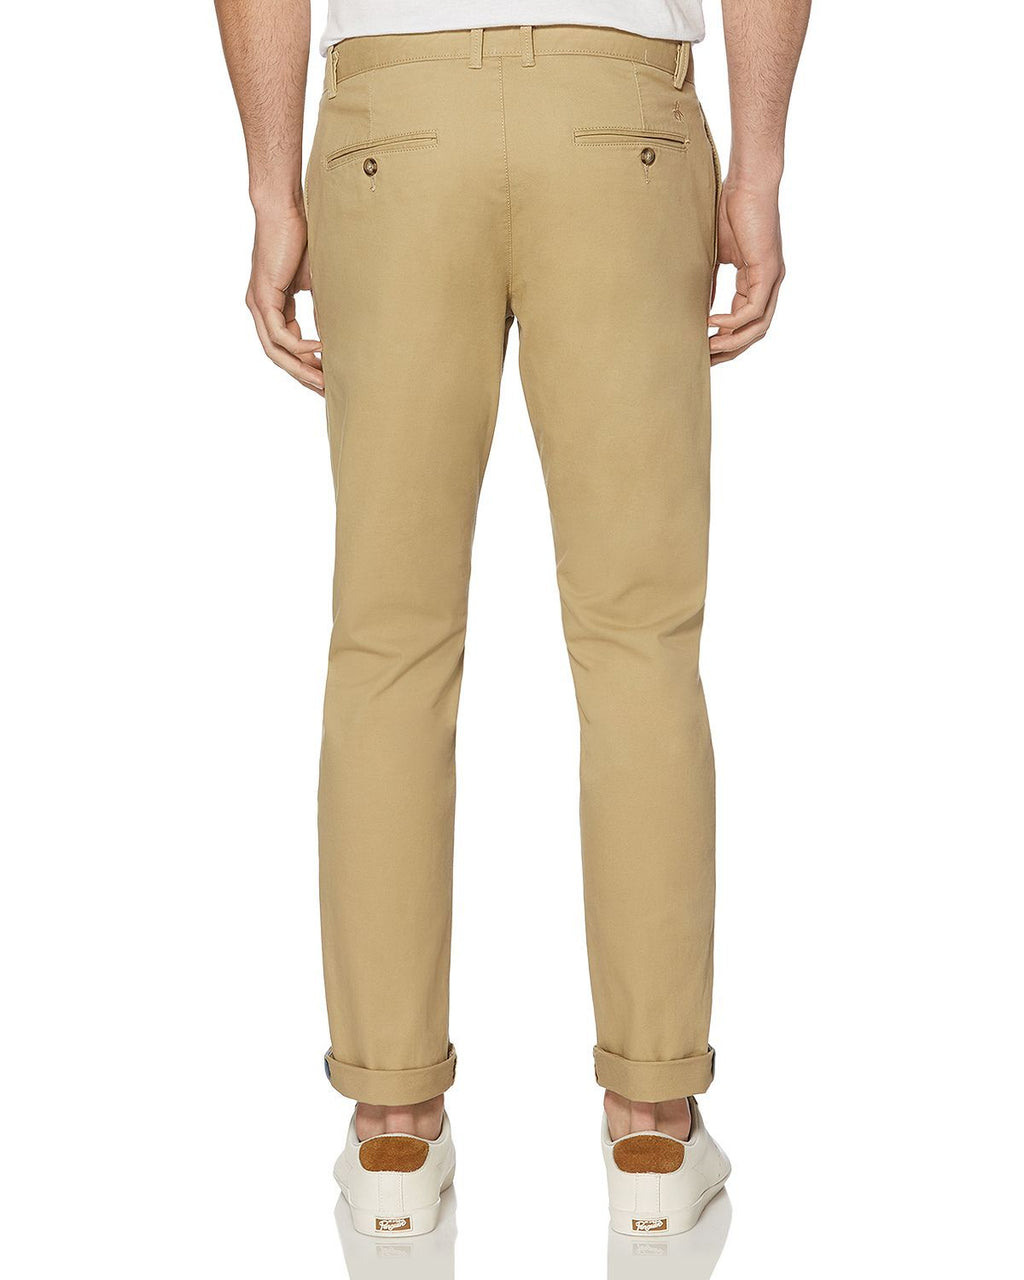 Original Penguin Men's P 55 Slim Stretch Chino Pants